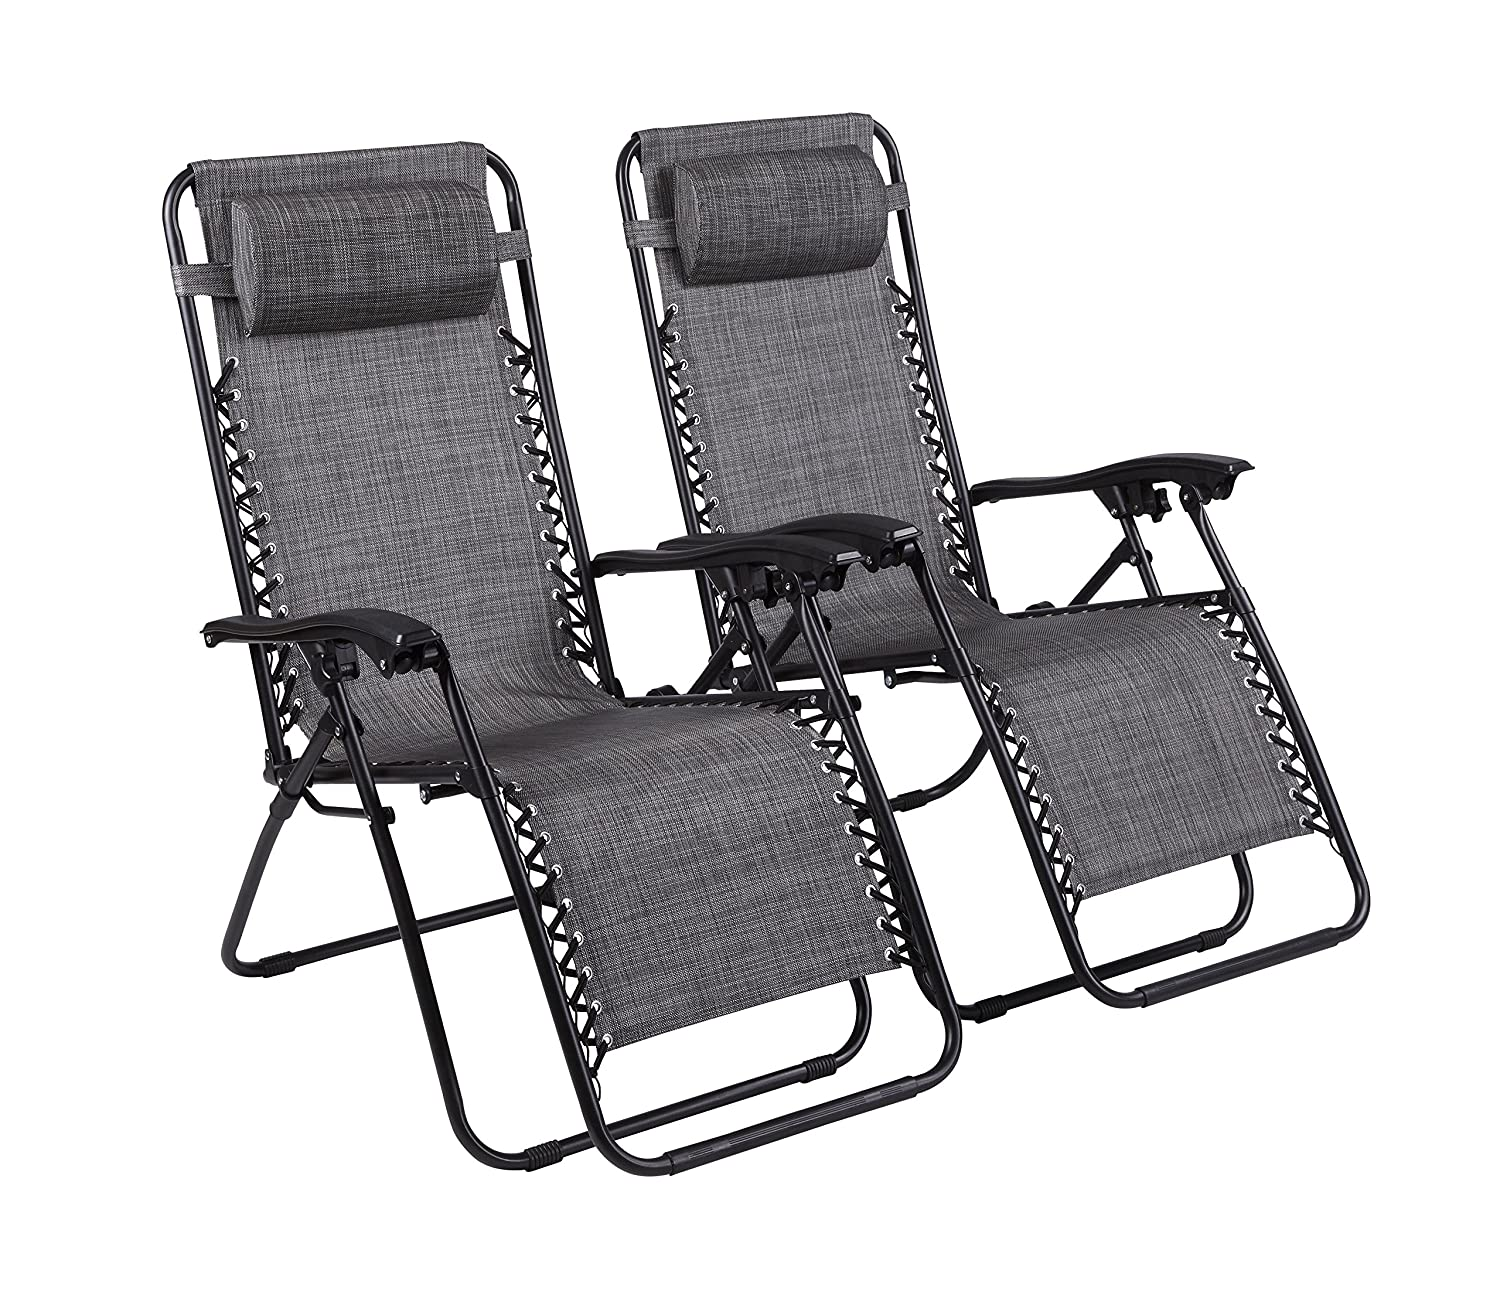 Amazon.com : Naomi Home Zero Gravity Lounge Patio Outdoor Recliner Chairs Gray/Set of 2 : Garden & Outdoor